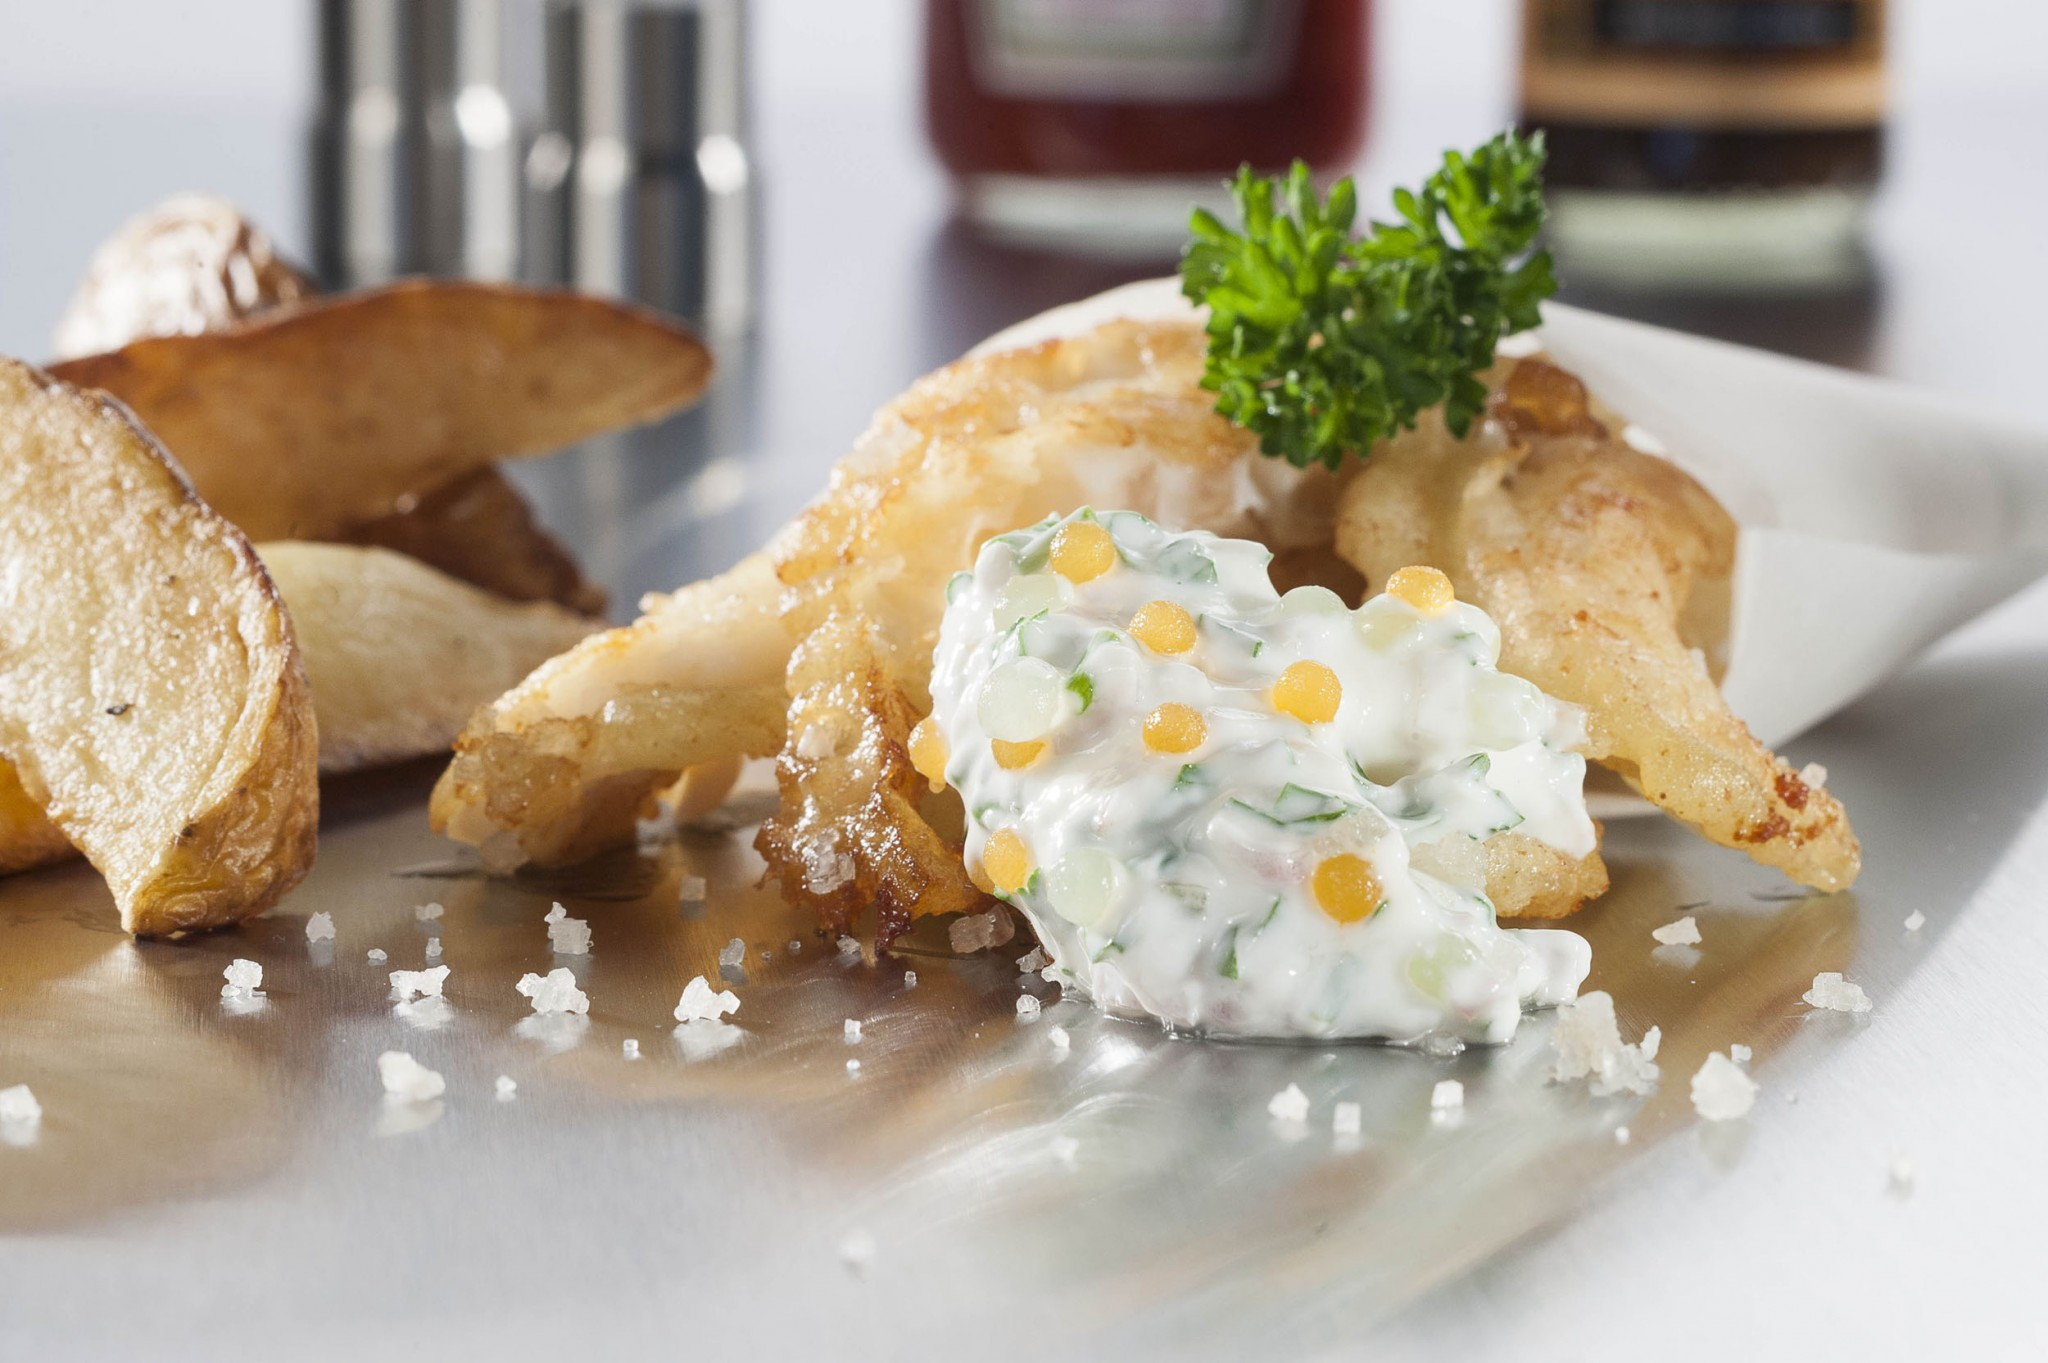 photographie culinaire, fish and ship